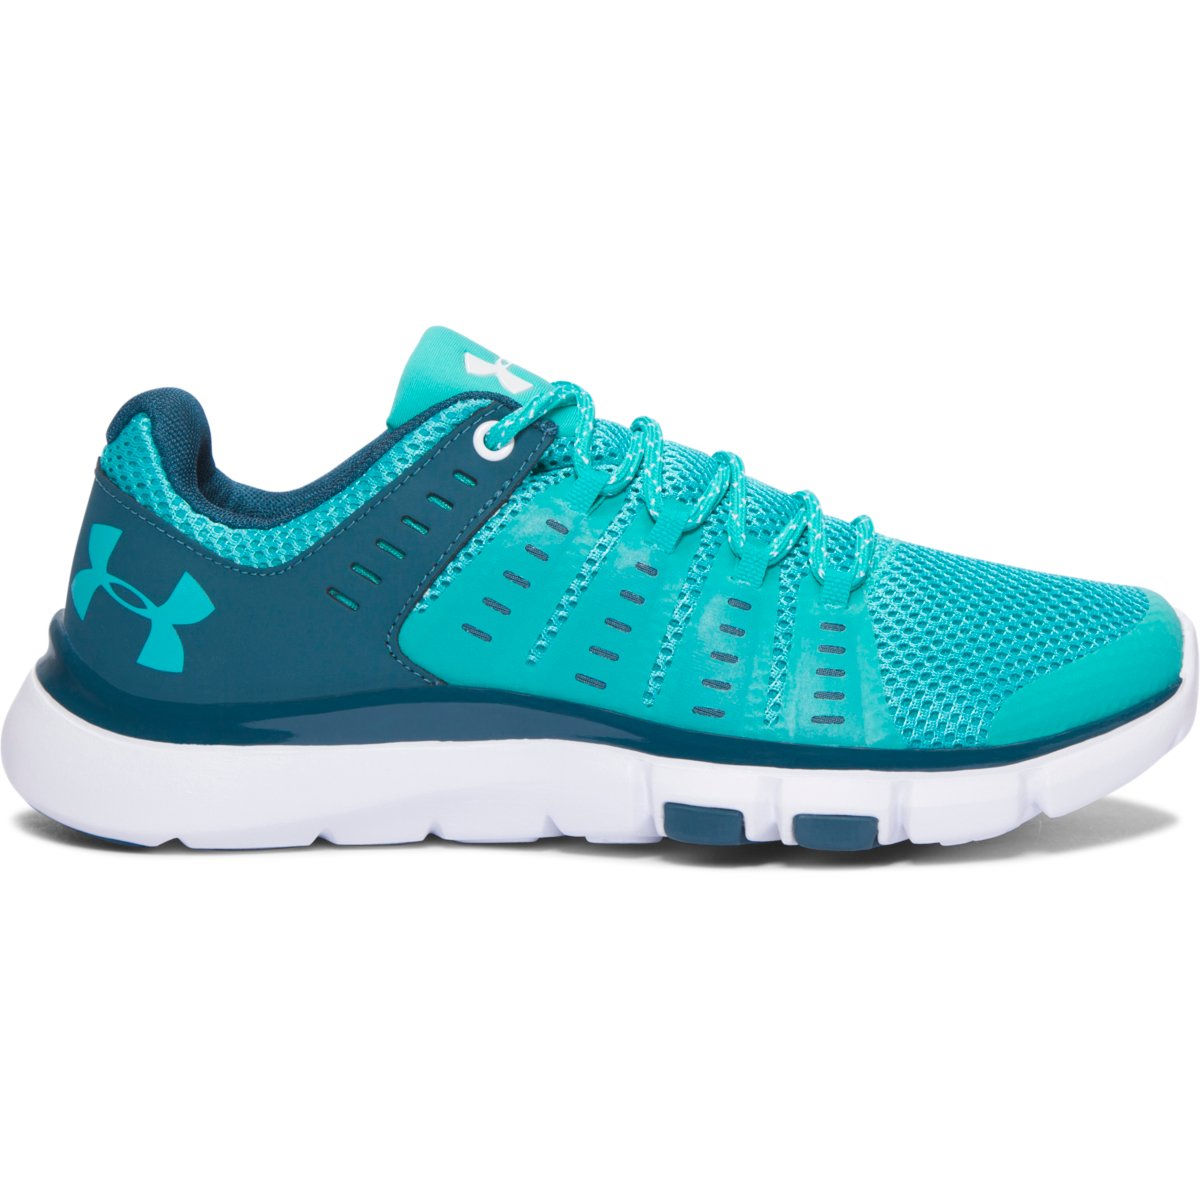 Chaussures Femme Under Armour Micro G Limitless TR 2 (PE17) - 6,5 UK